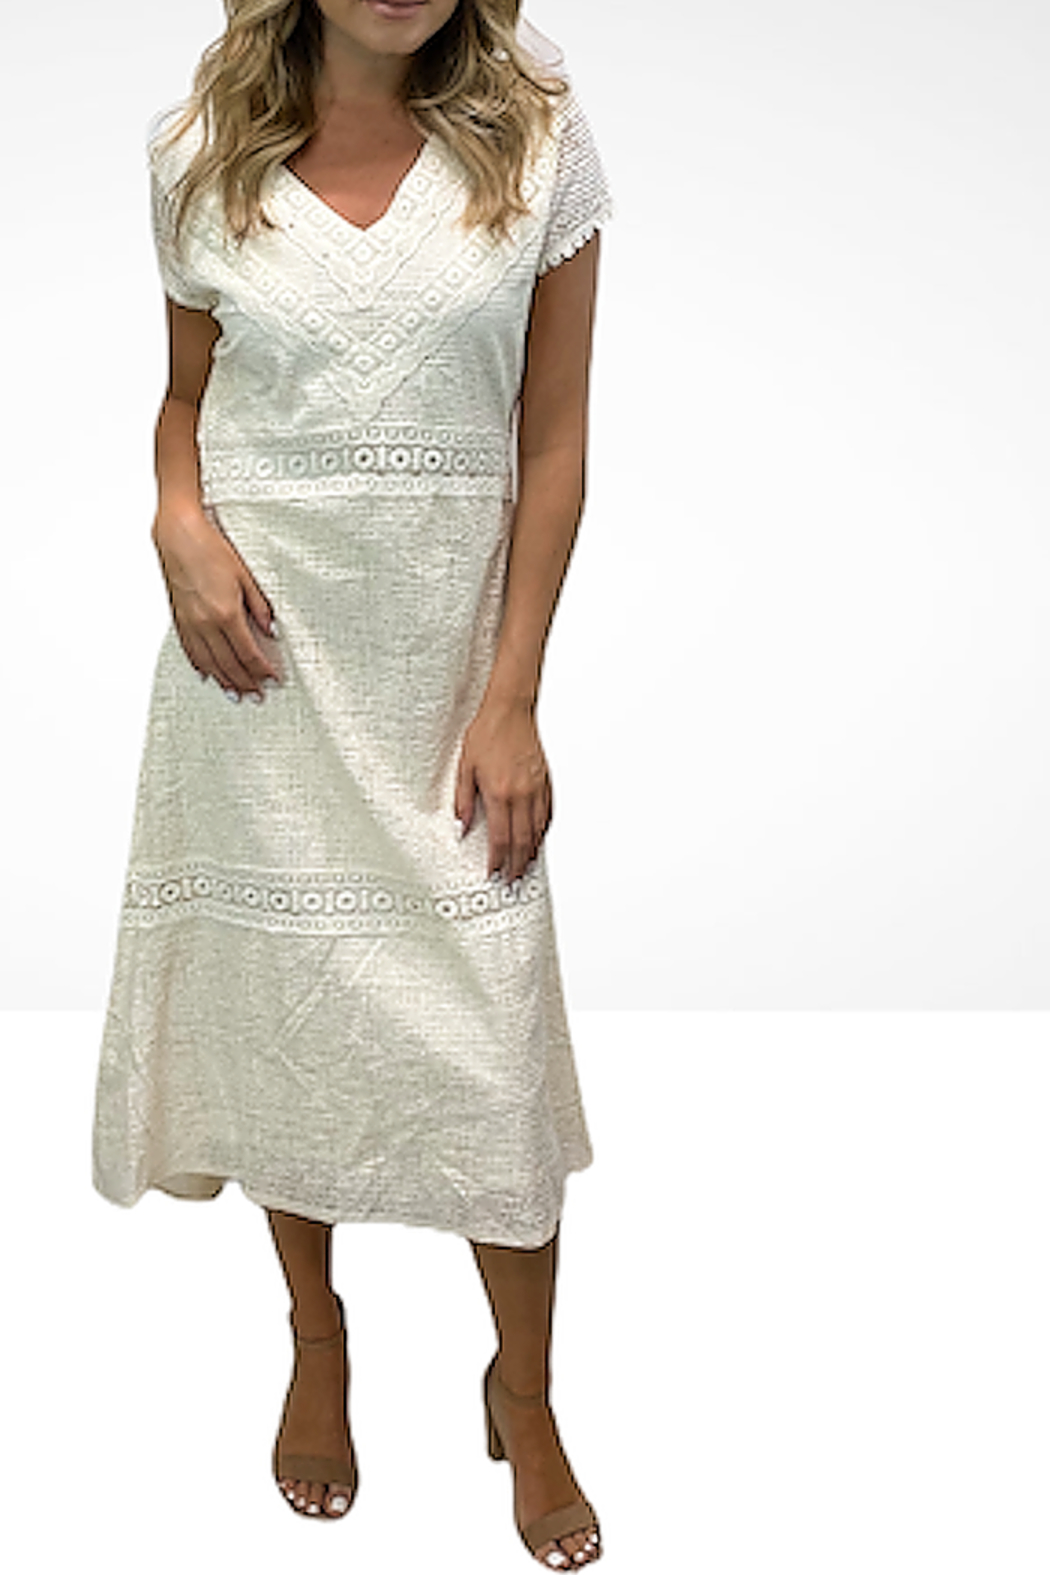 Reba Style Island Breeze natural dress - Main Image